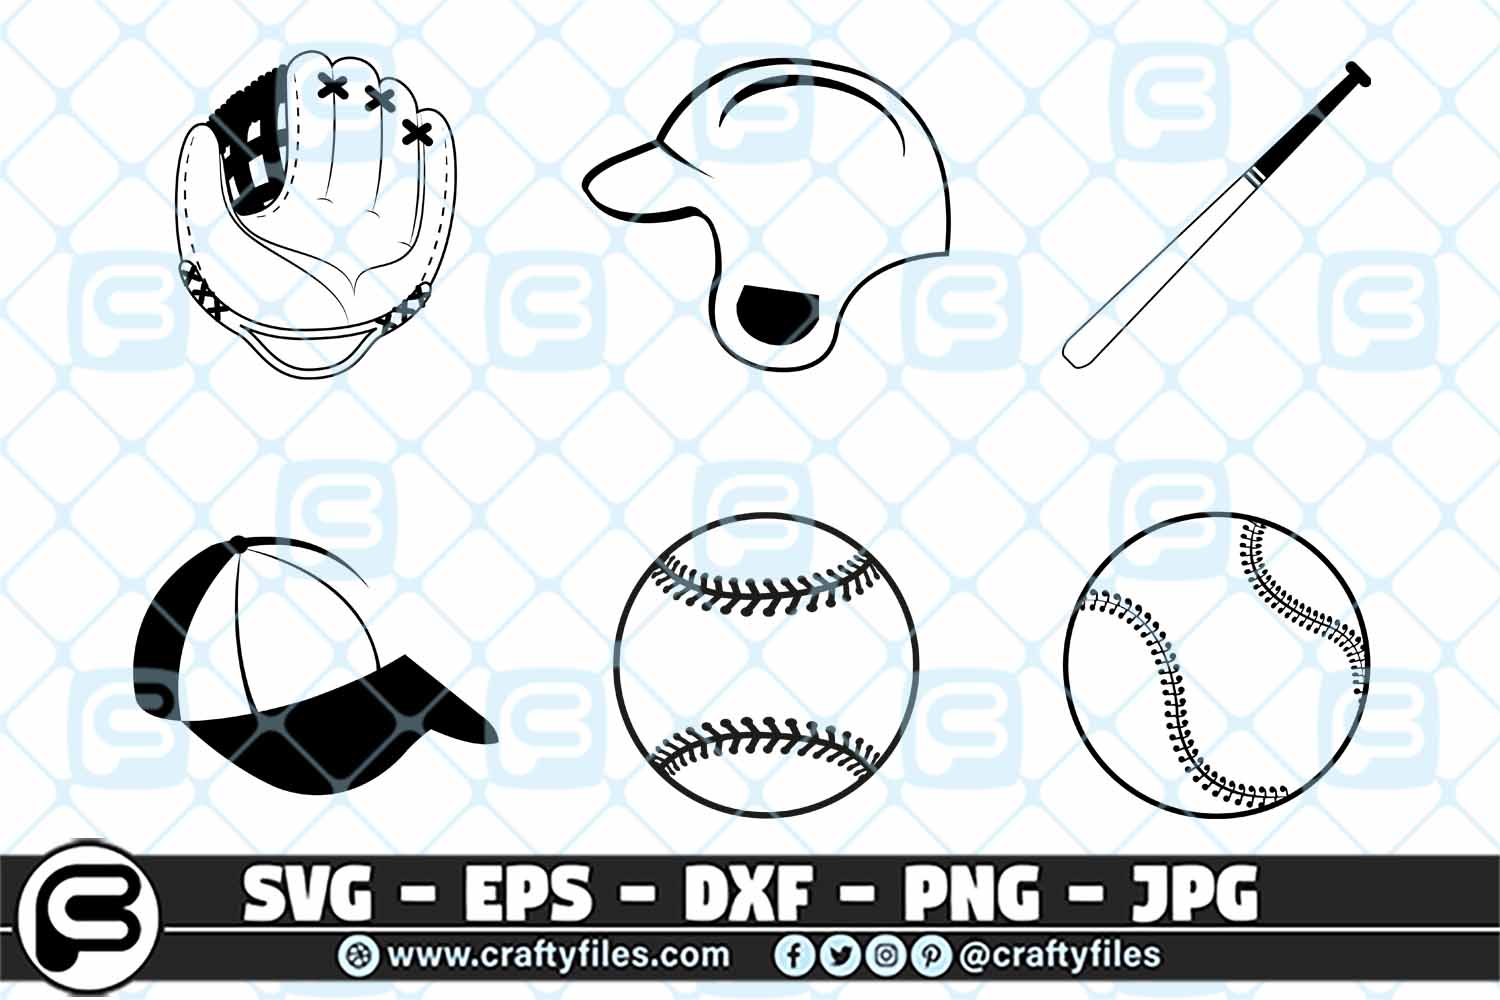 Download Free Base Ball Glove Bundle Graphic By Crafty Files Creative Fabrica for Cricut Explore, Silhouette and other cutting machines.